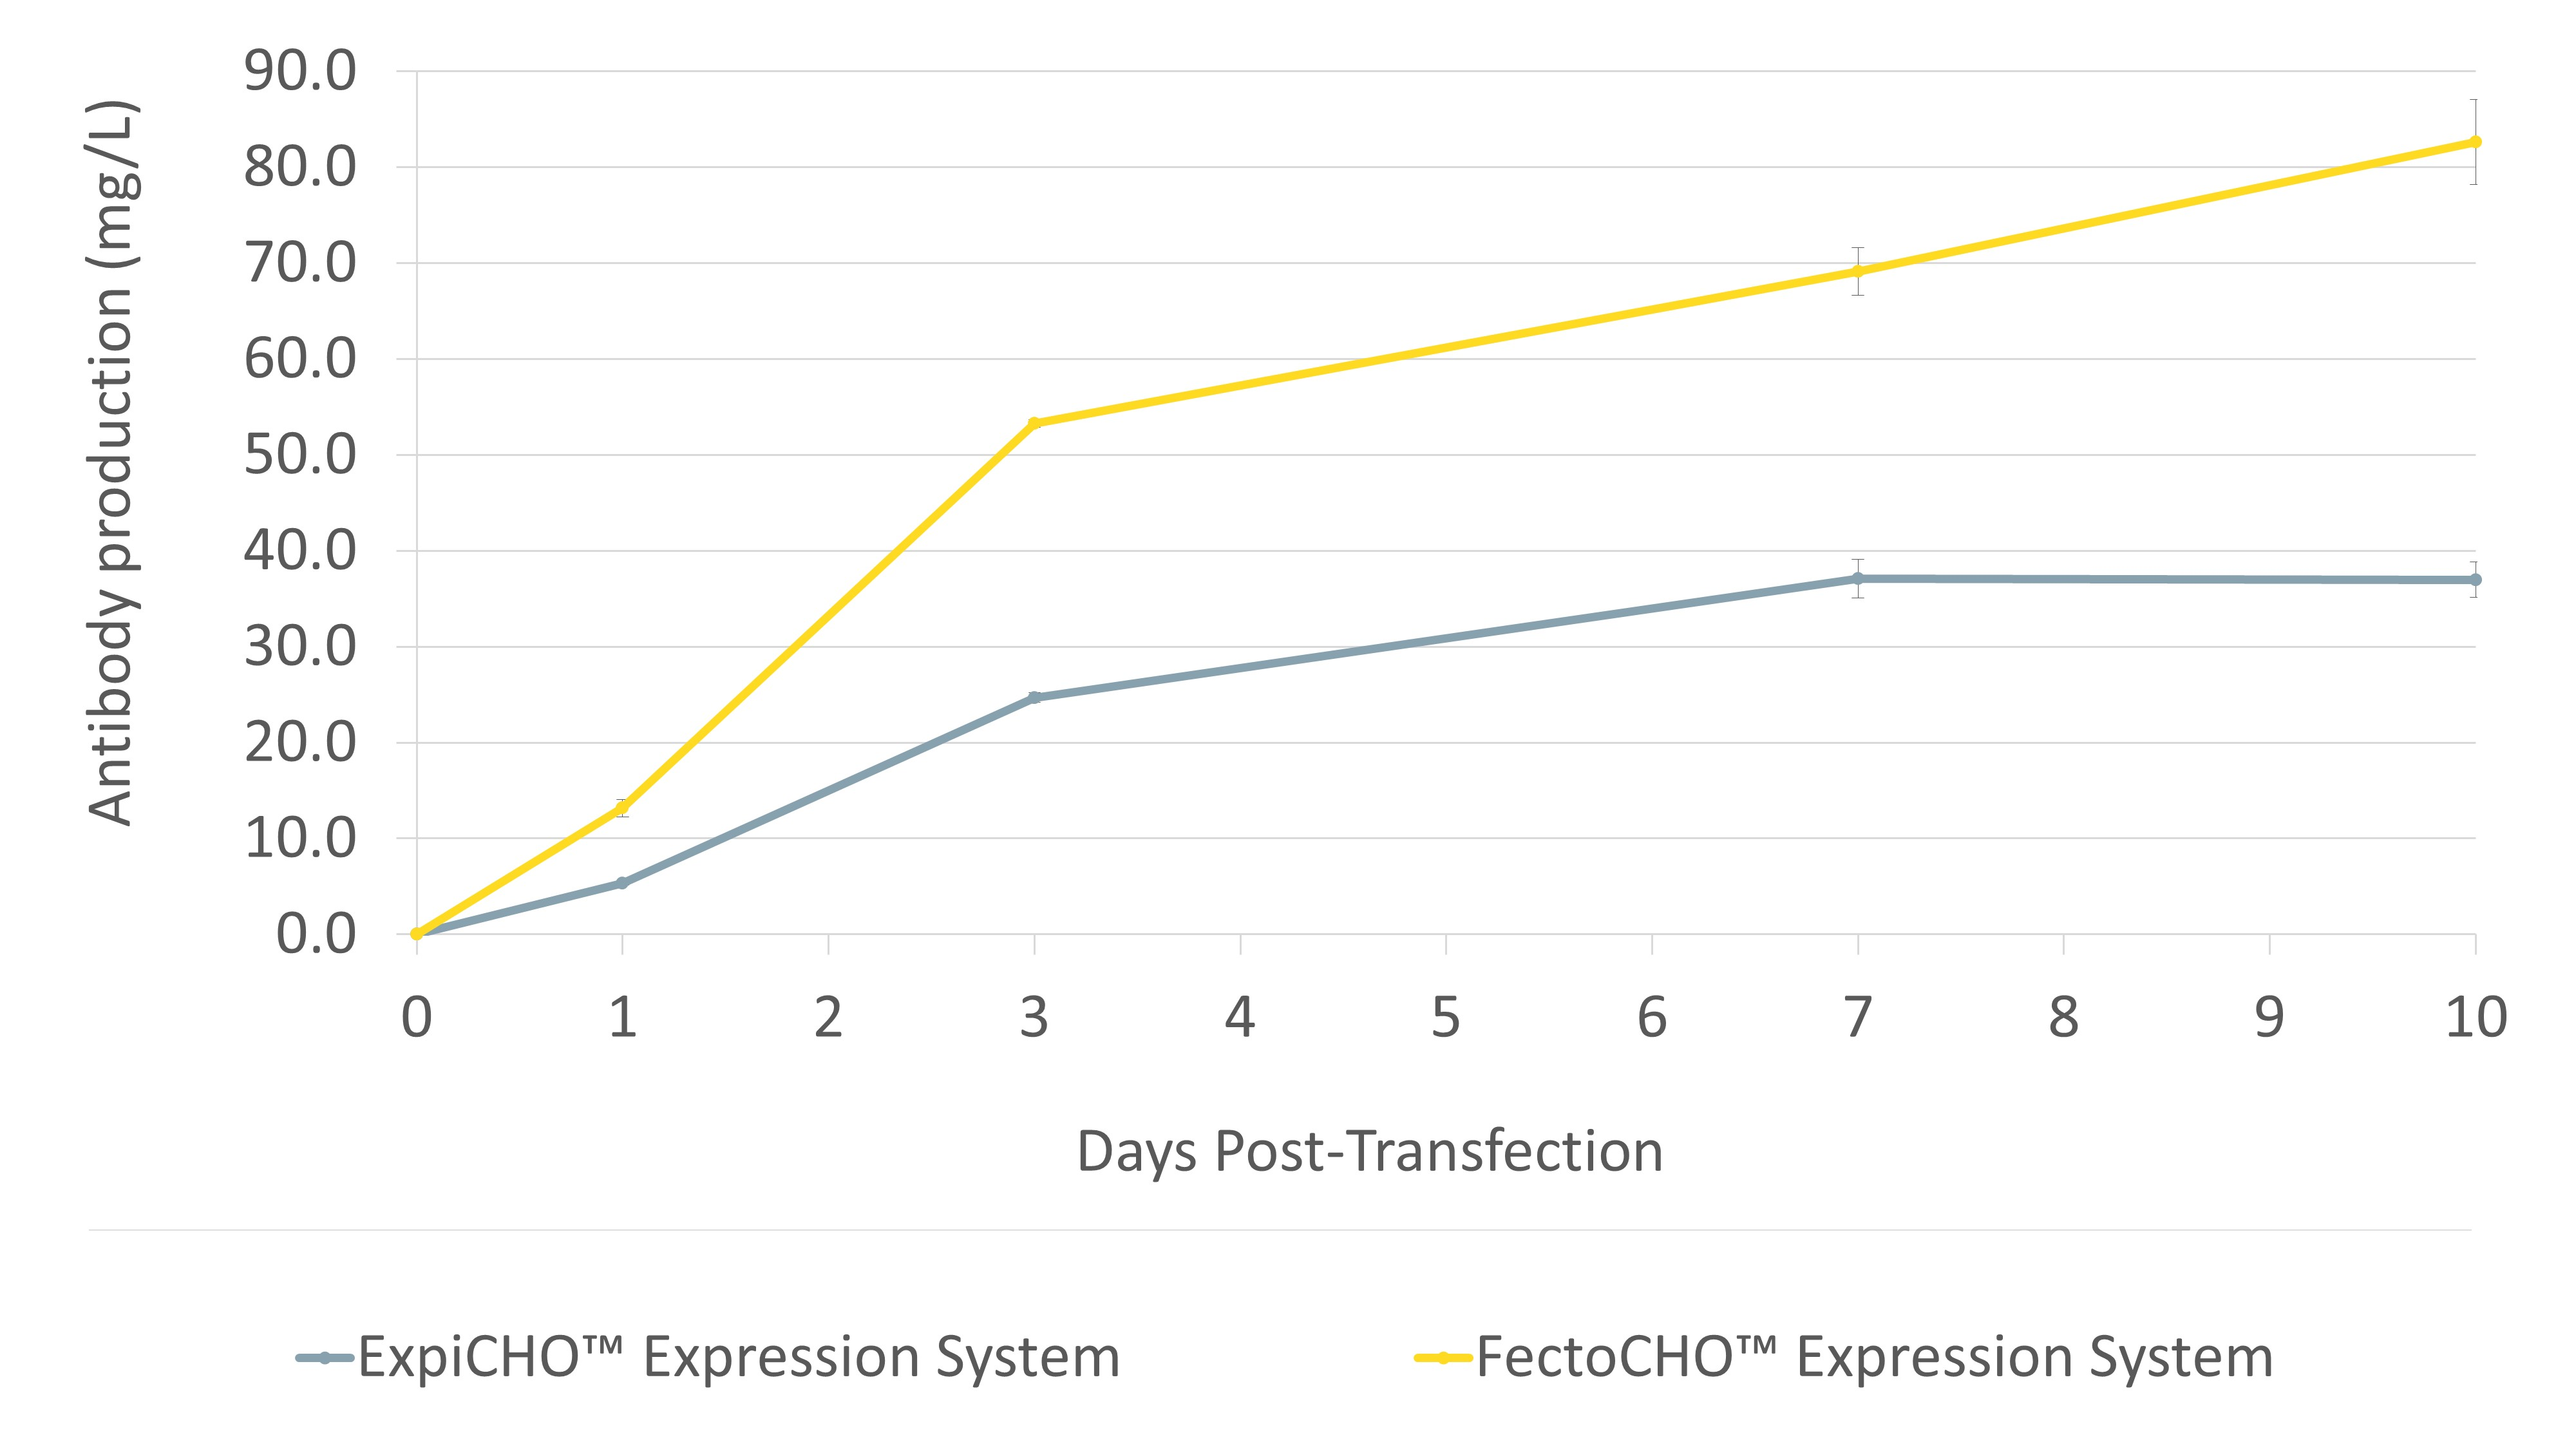 Fig 3. FectoCHO Expression System vs ExpiCHO system - Polyplus-transfection